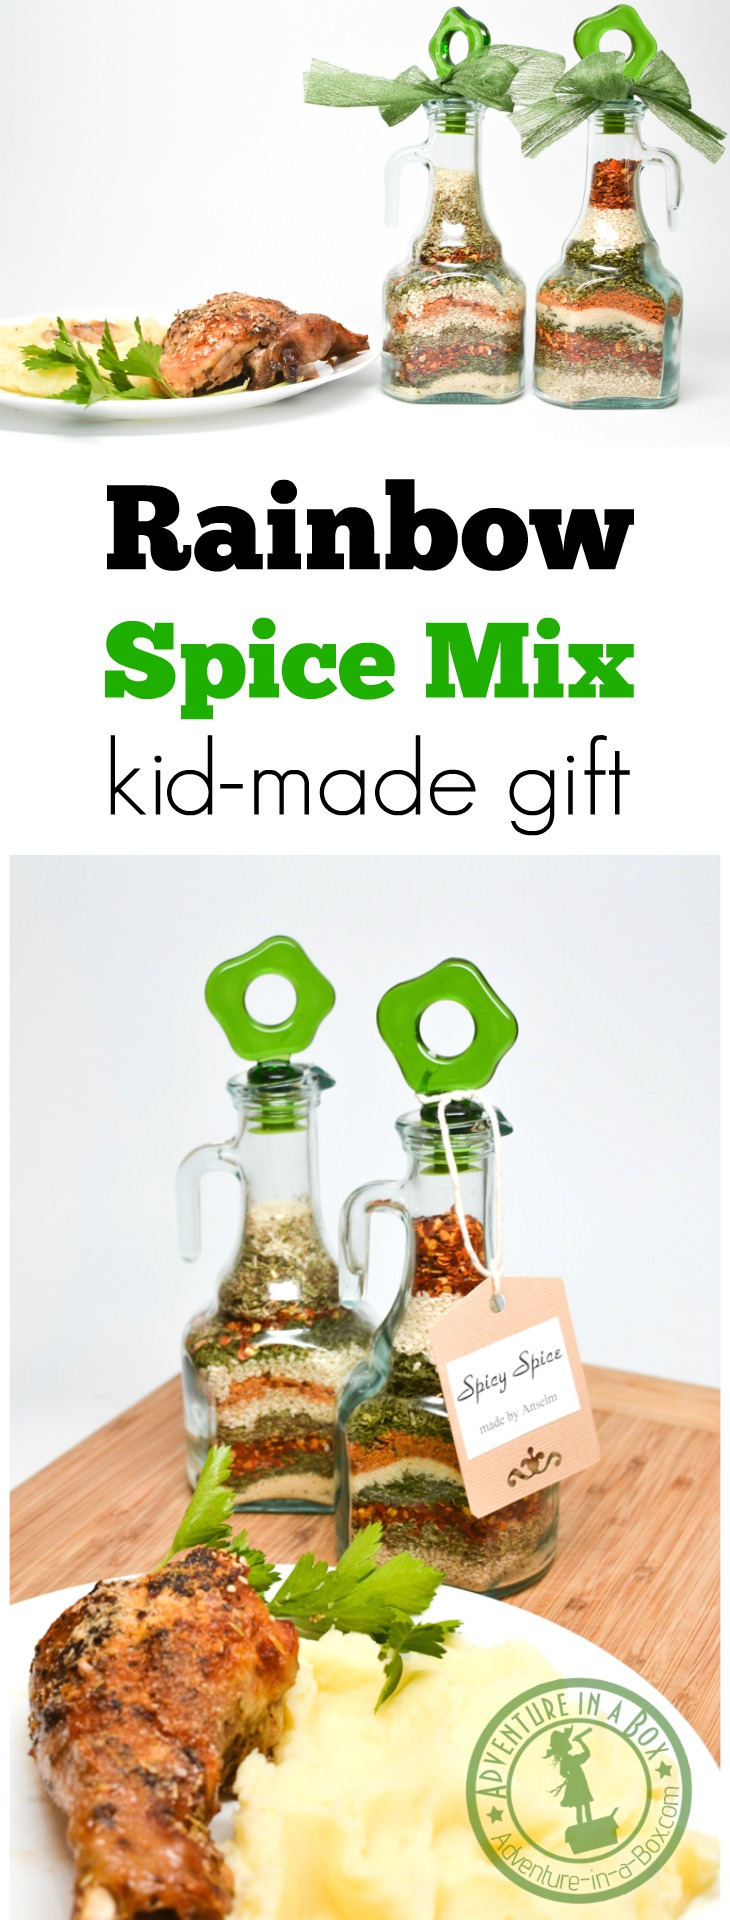 Rainbow Spice Mix: kid-made gift idea and practising pouring skills for toddlers - two simple kid activities in one!